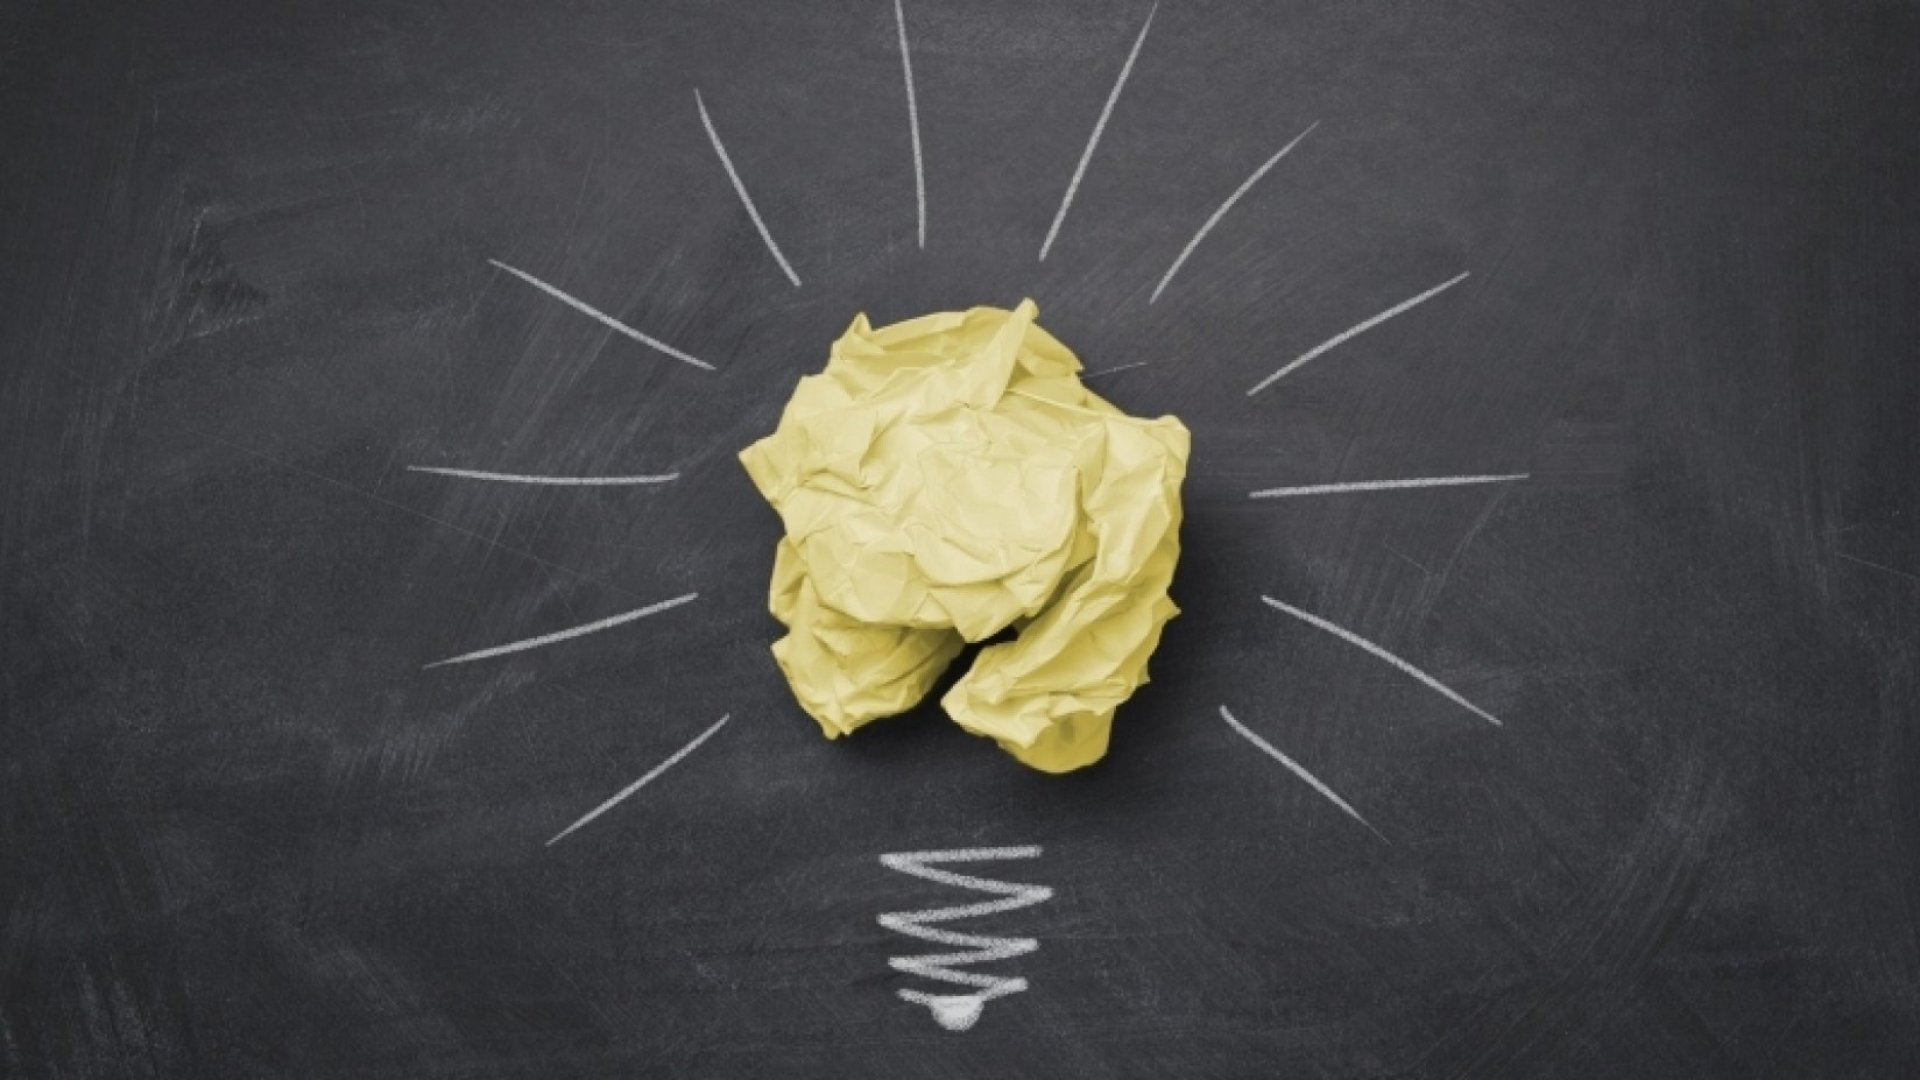 How to Foster Innovation and Entrepreneurship at a Large Company